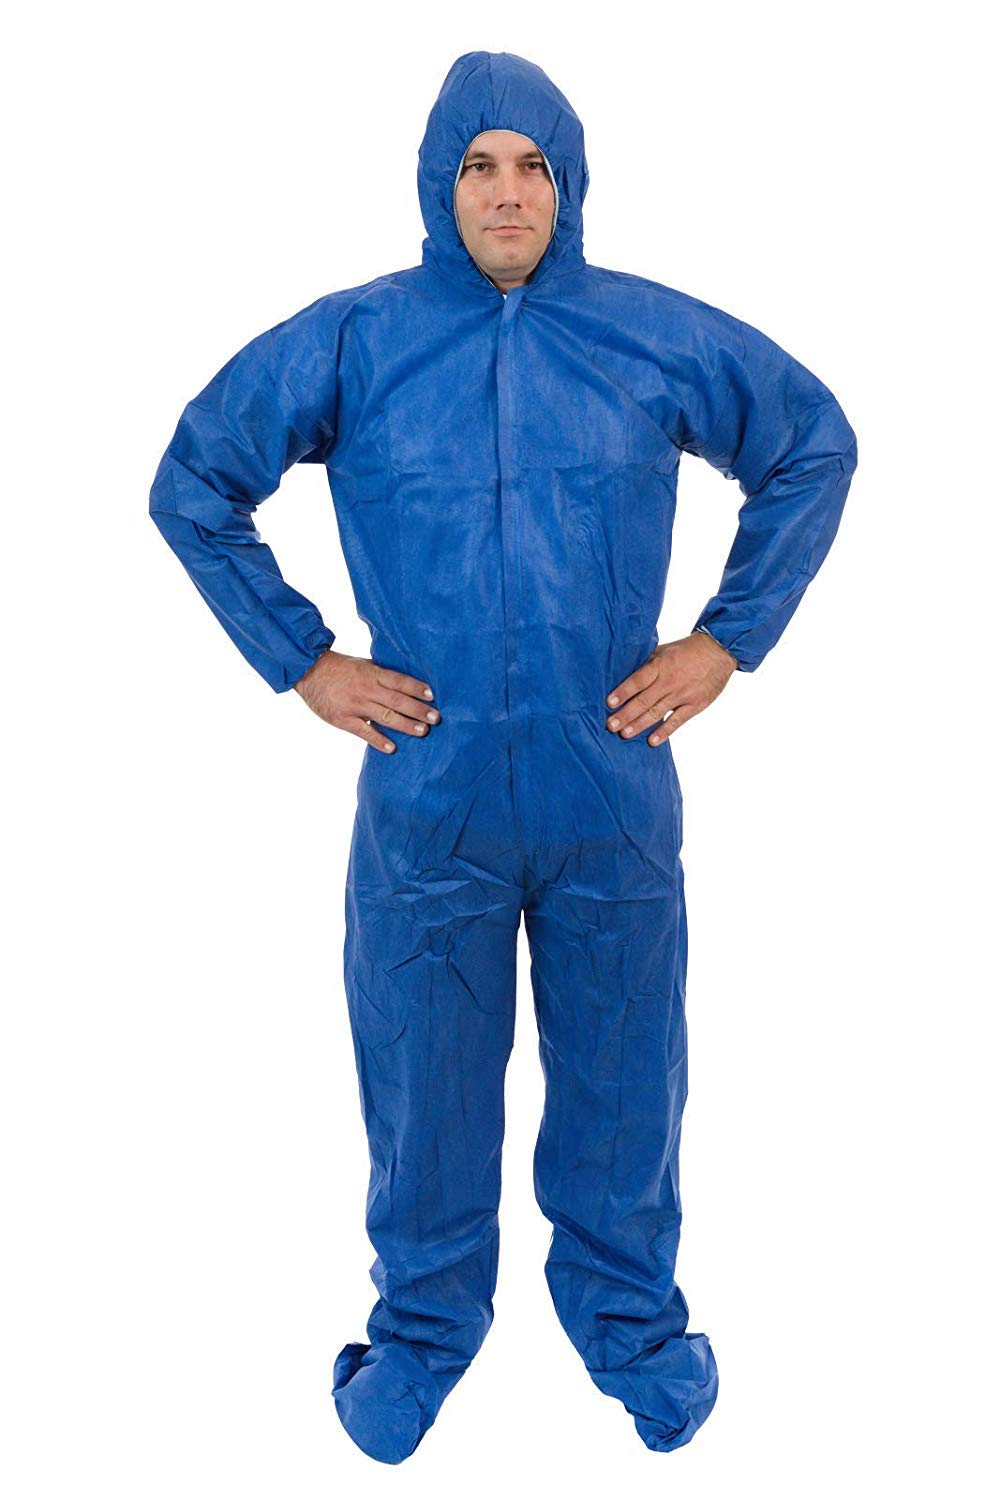 International Enviorugard – Lightweight 3 Layer SMS General Protective Coverall for General Cleanup (25 per case) (3XL, Blue)